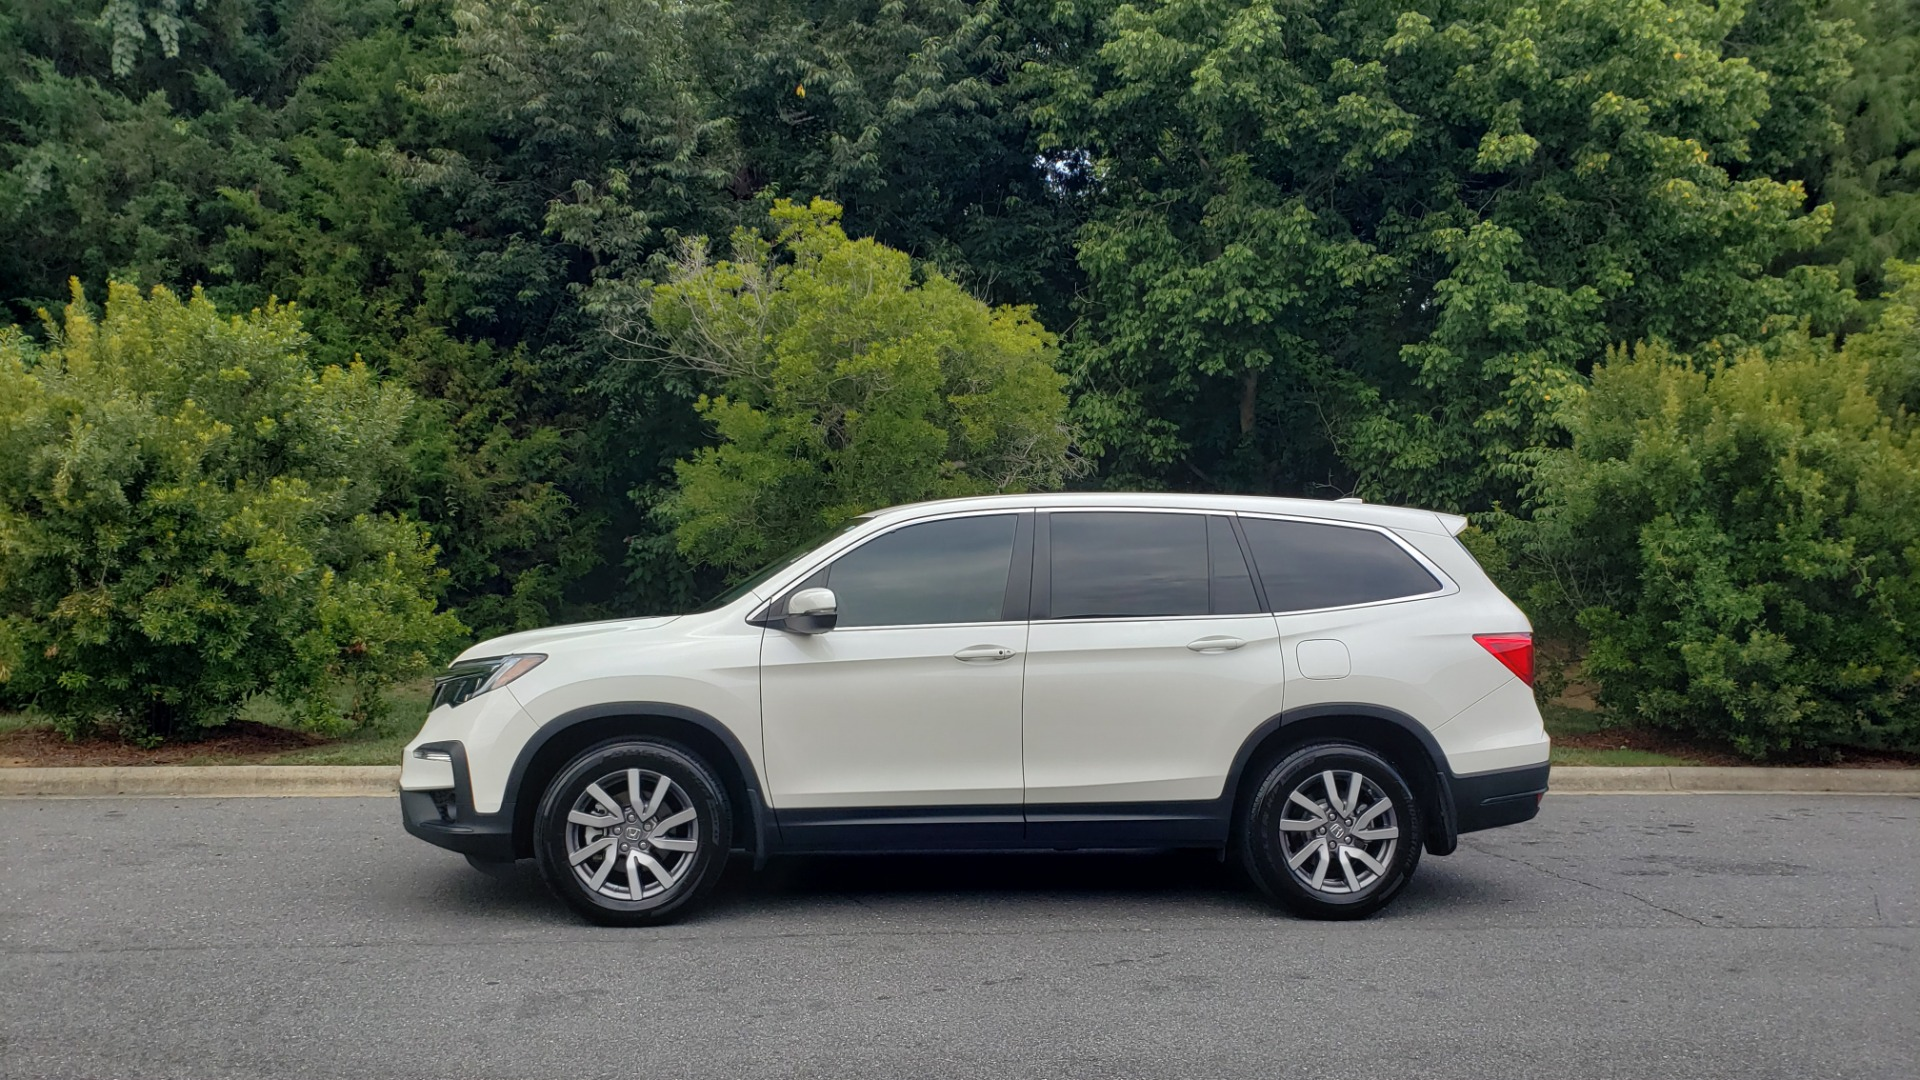 Used 2019 Honda PILOT EX-L / V6 / NAV / SUNROOF / DVD / 3-ROW / REARVIEW for sale Sold at Formula Imports in Charlotte NC 28227 2